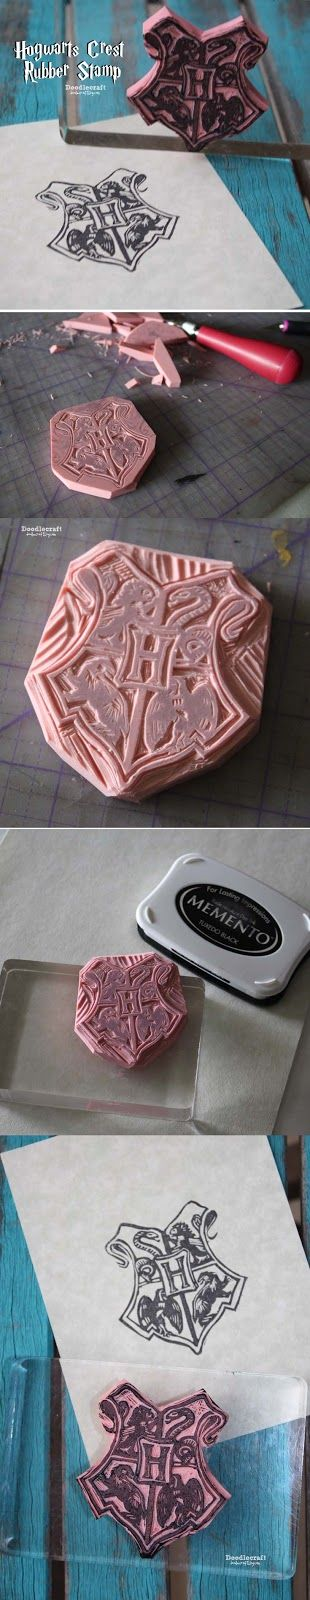 Hogwarts Crest Rubber Stamp DIY Carve And Cut Your Own